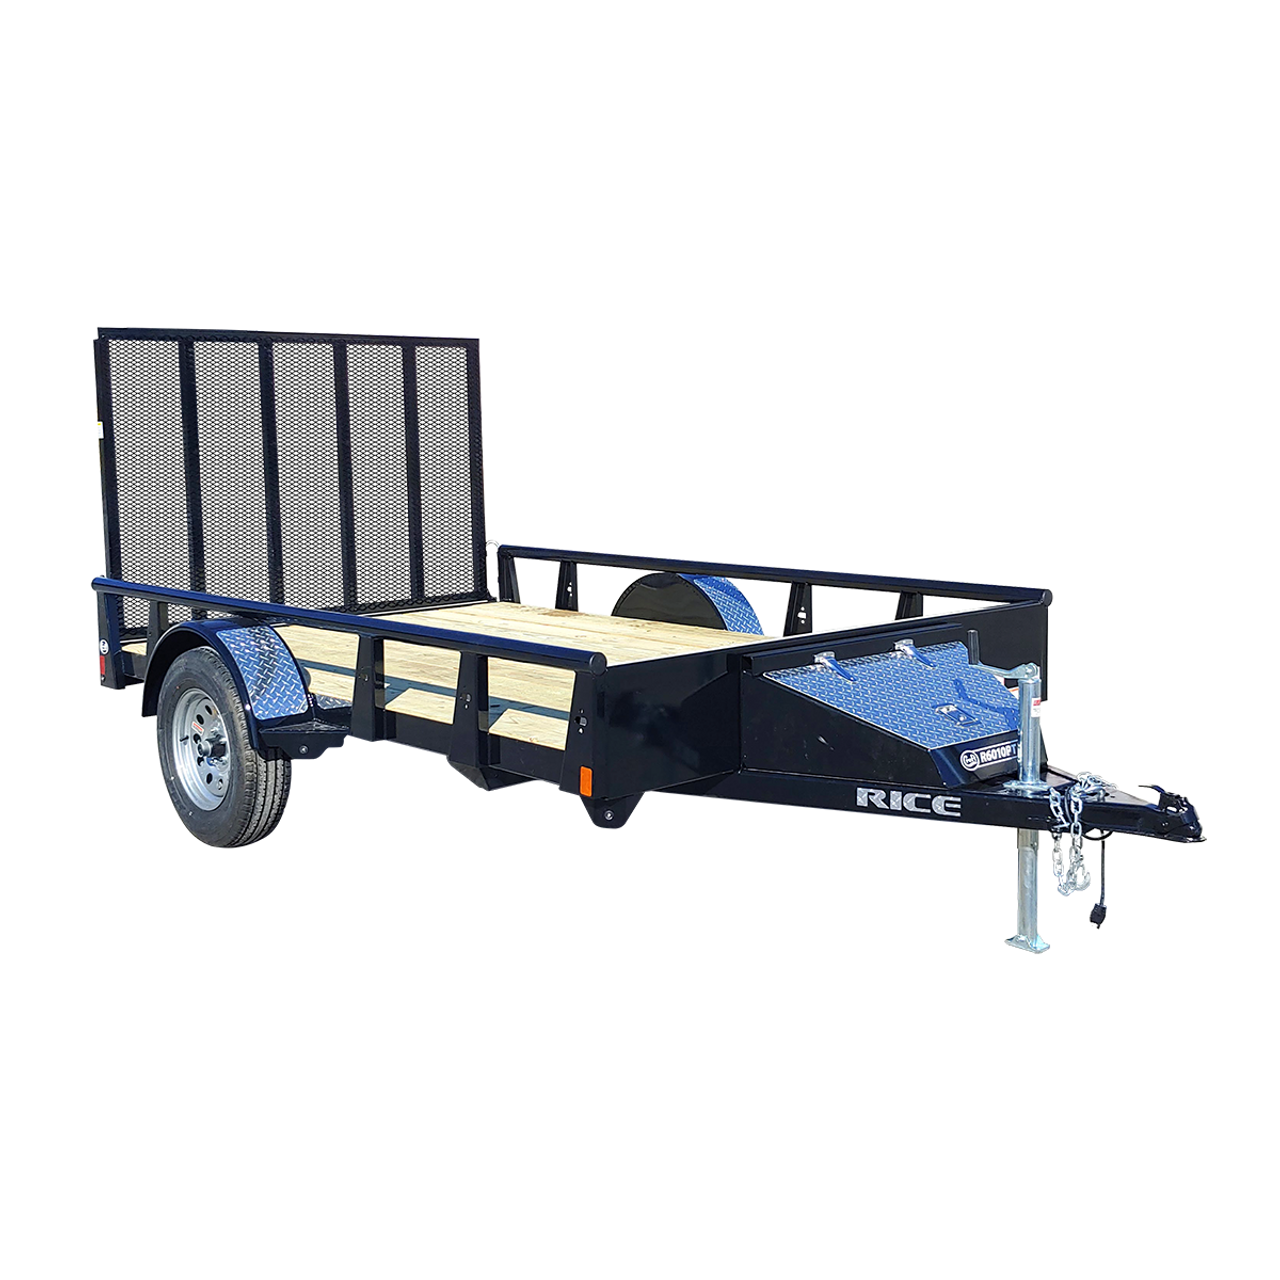 R712PT --- 7' x 12' Trailer with Ramp Gate and Pipe Top